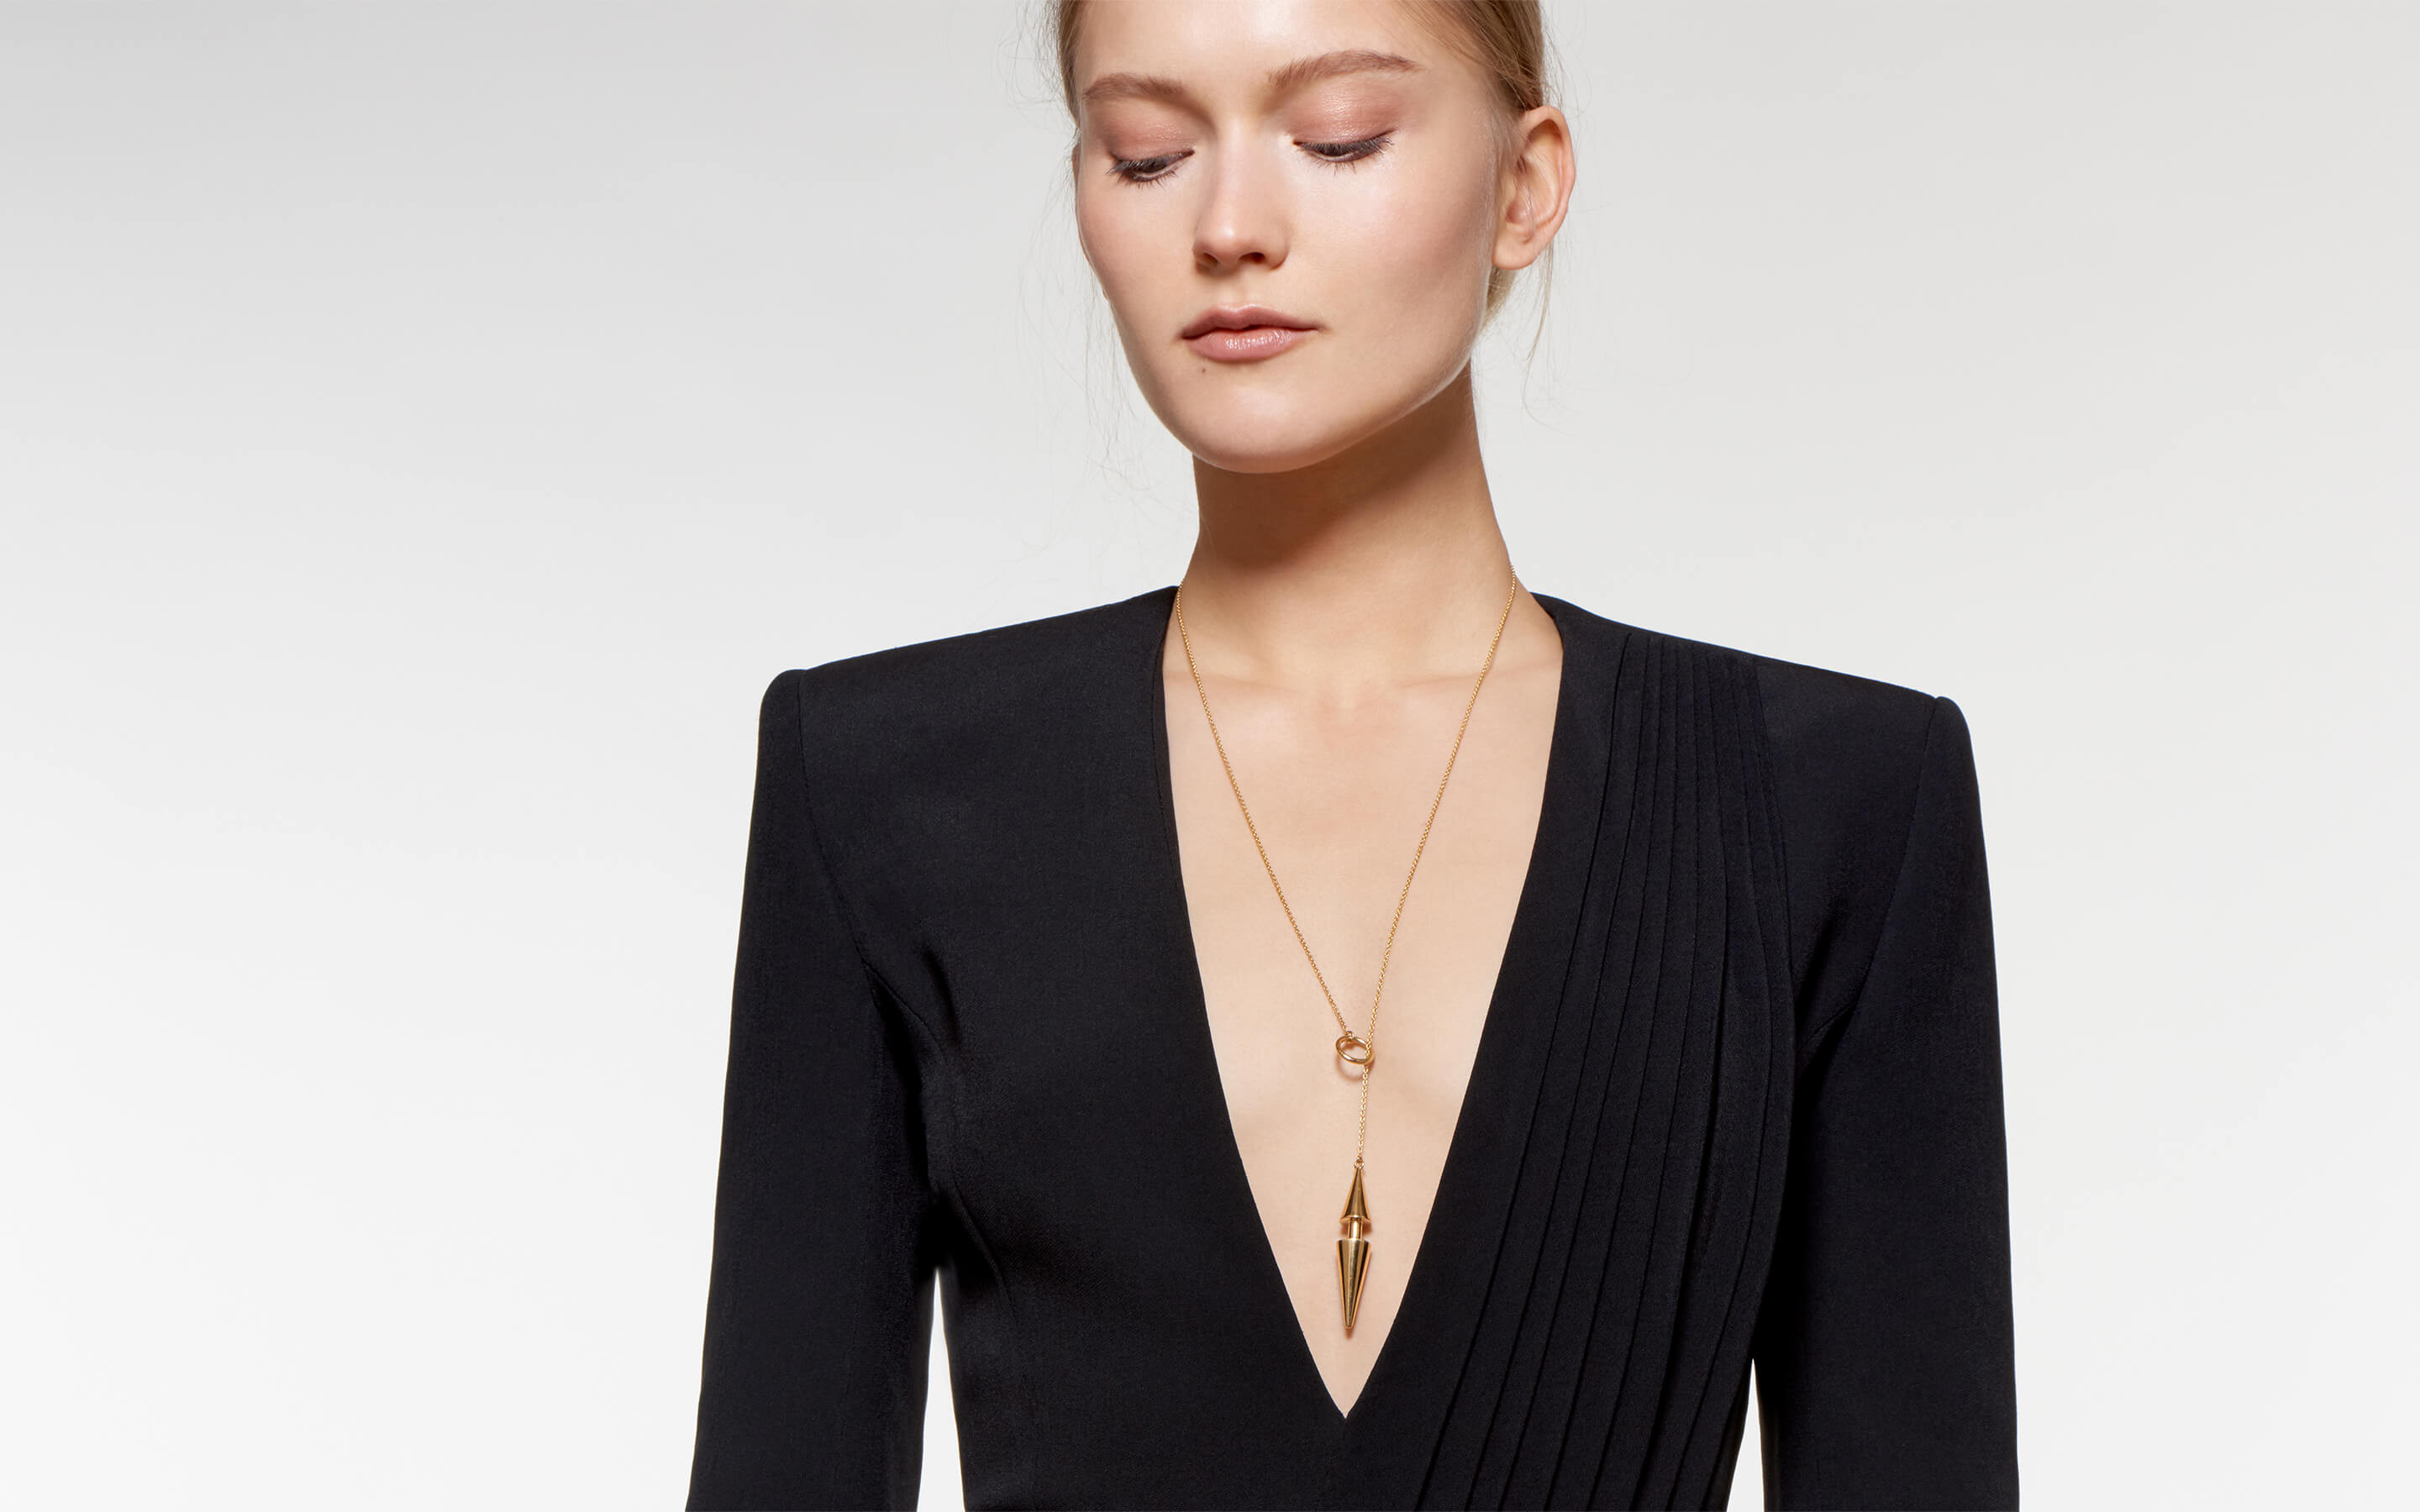 cool blonde model wearing 22 karat gold necklace in lariat-style with double cone pendant